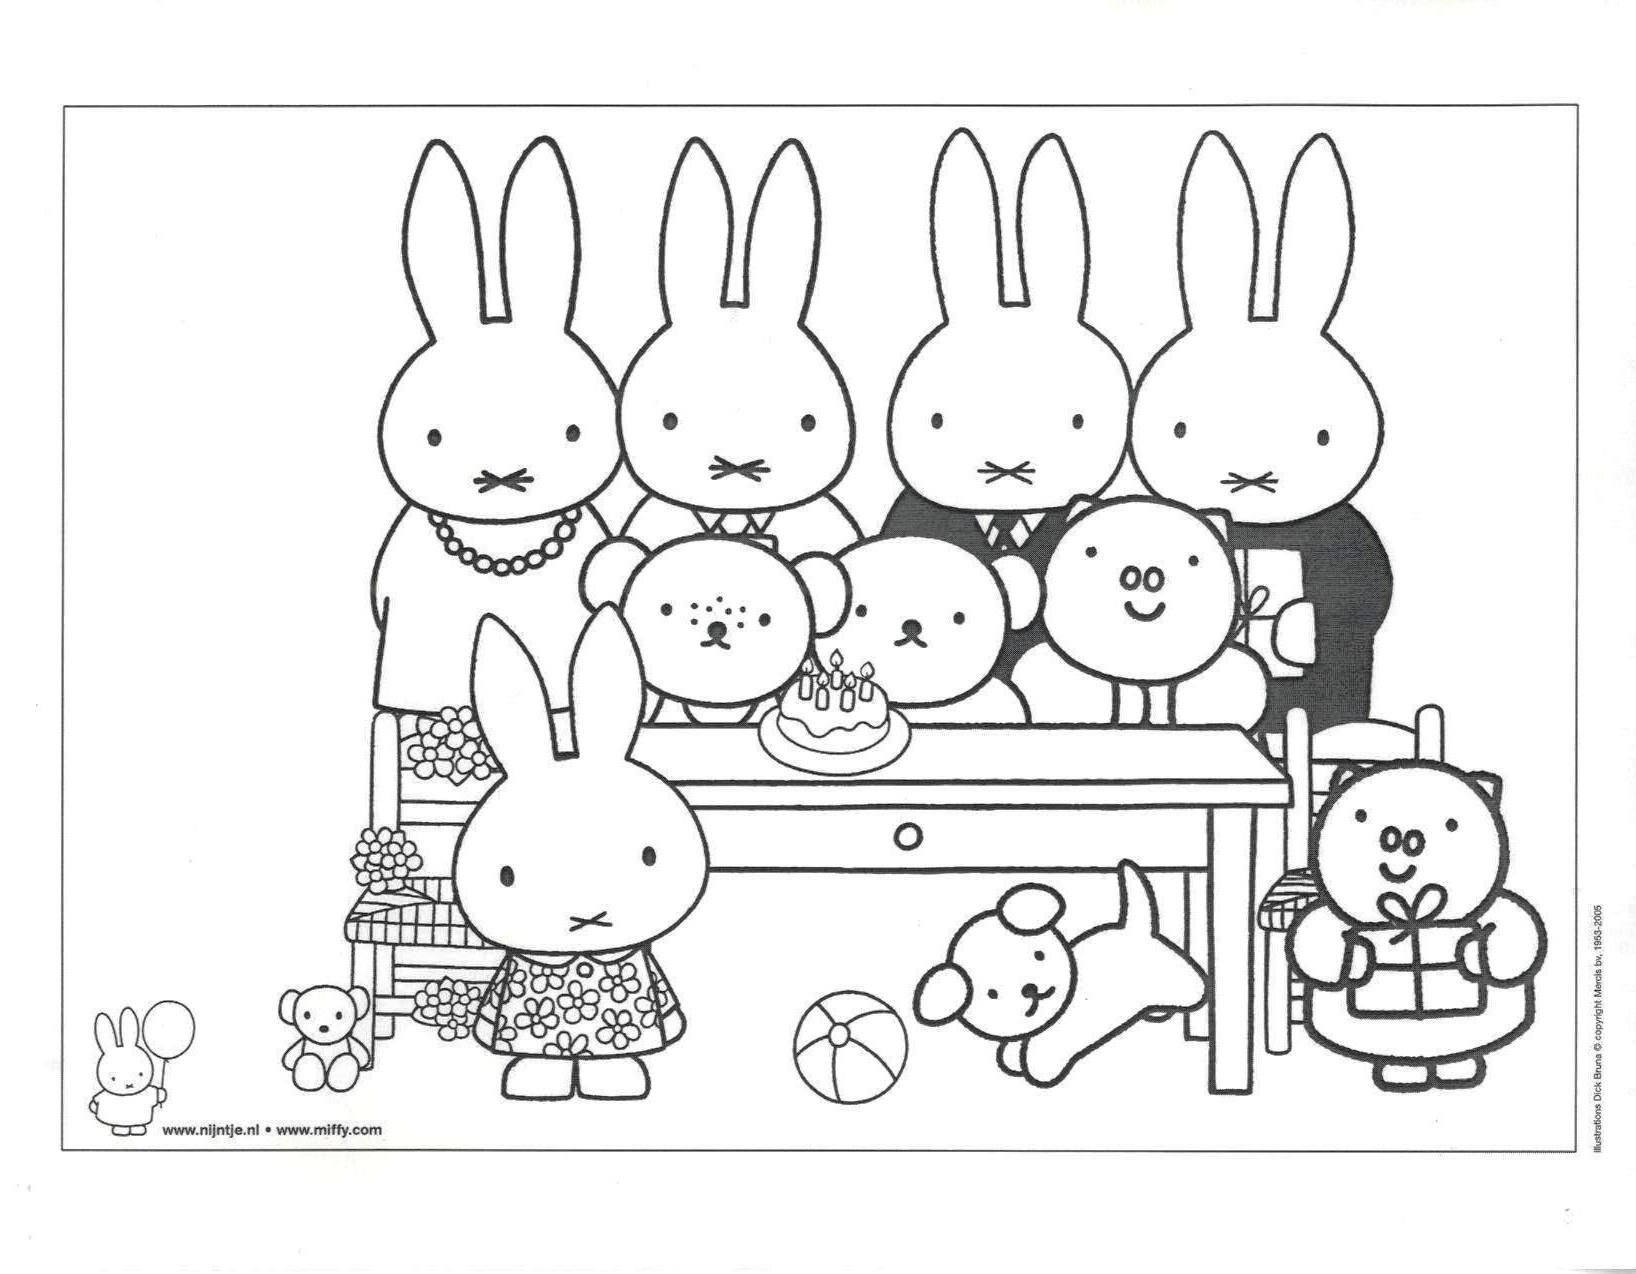 Miffy Friends Colouring Cartoon Coloring Pages Friend Cartoon Miffy